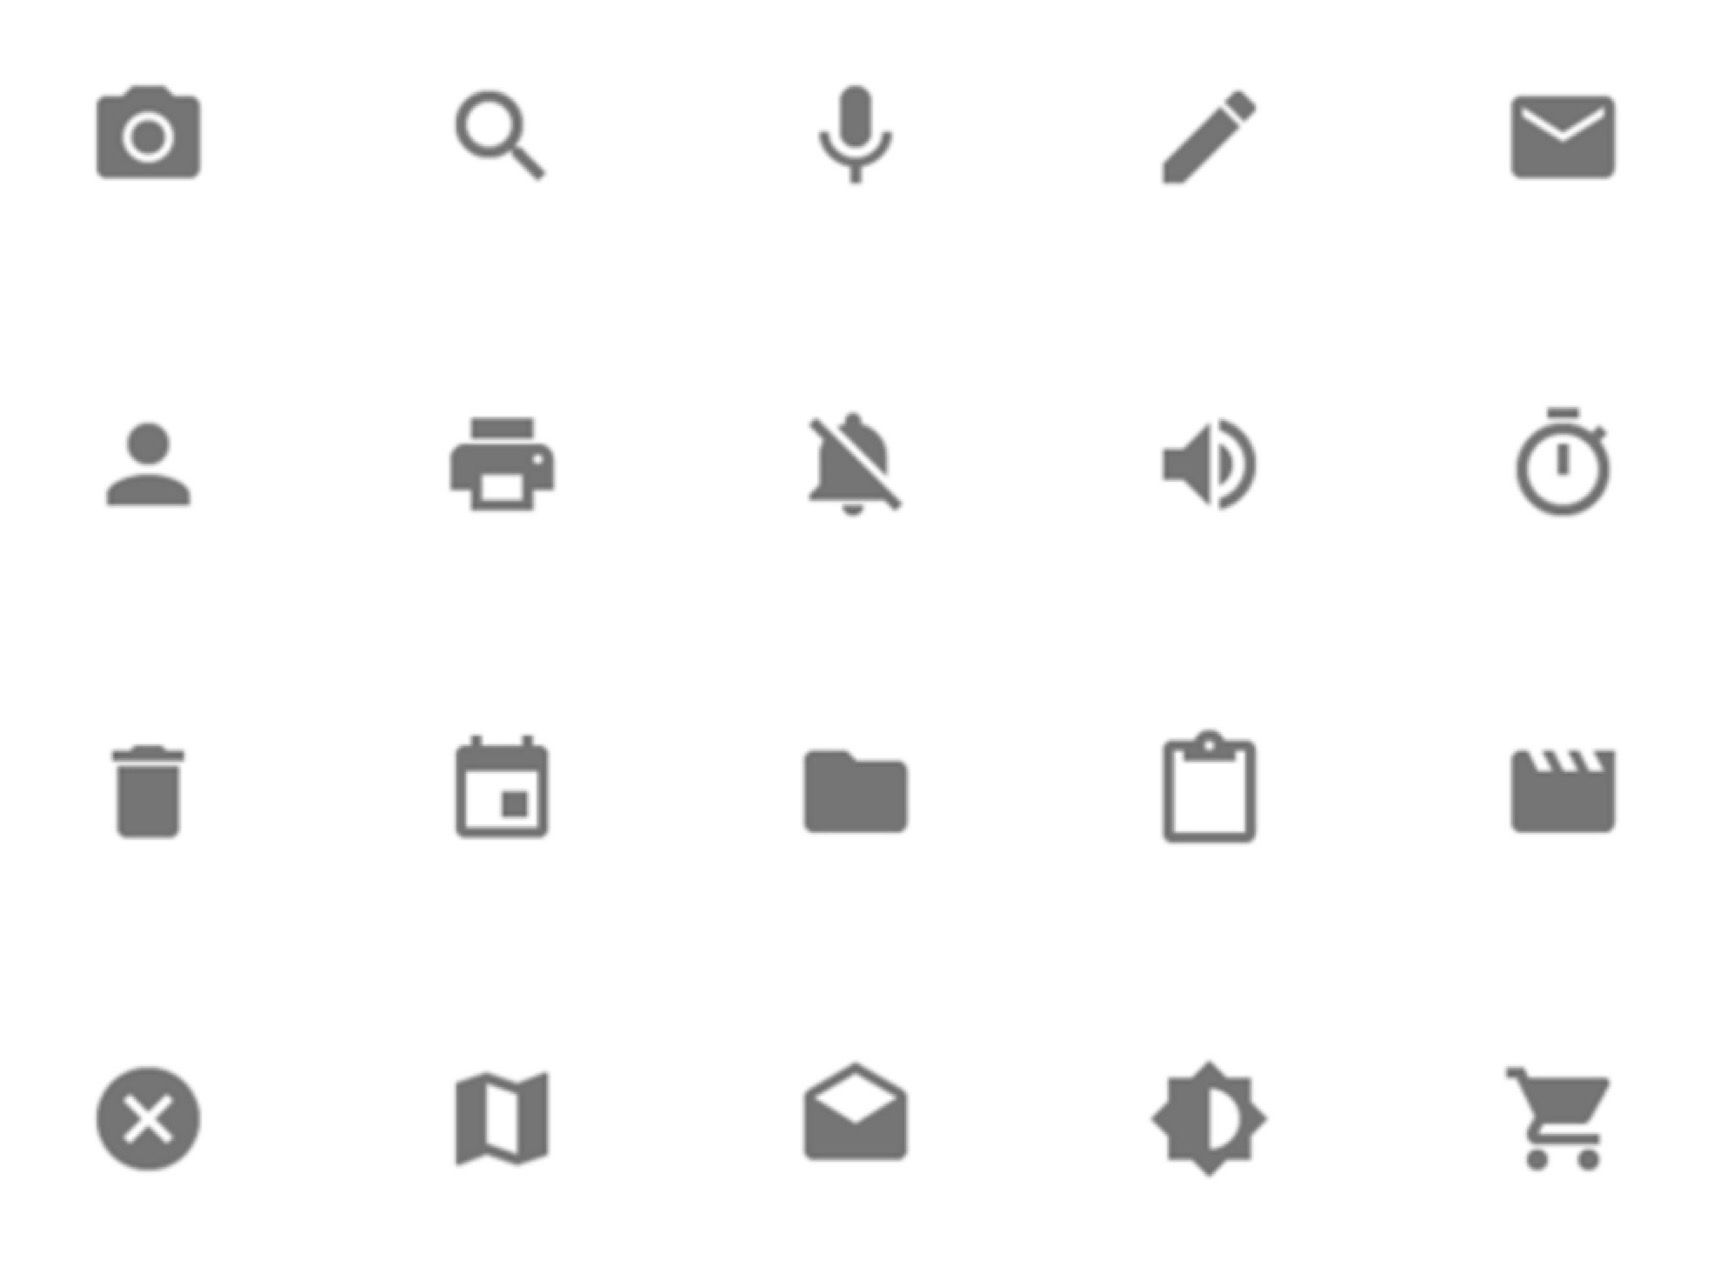 pin by szcdesign on icon pinterest icons rh pinterest com Android Icon Glossary Android Icon Meanings